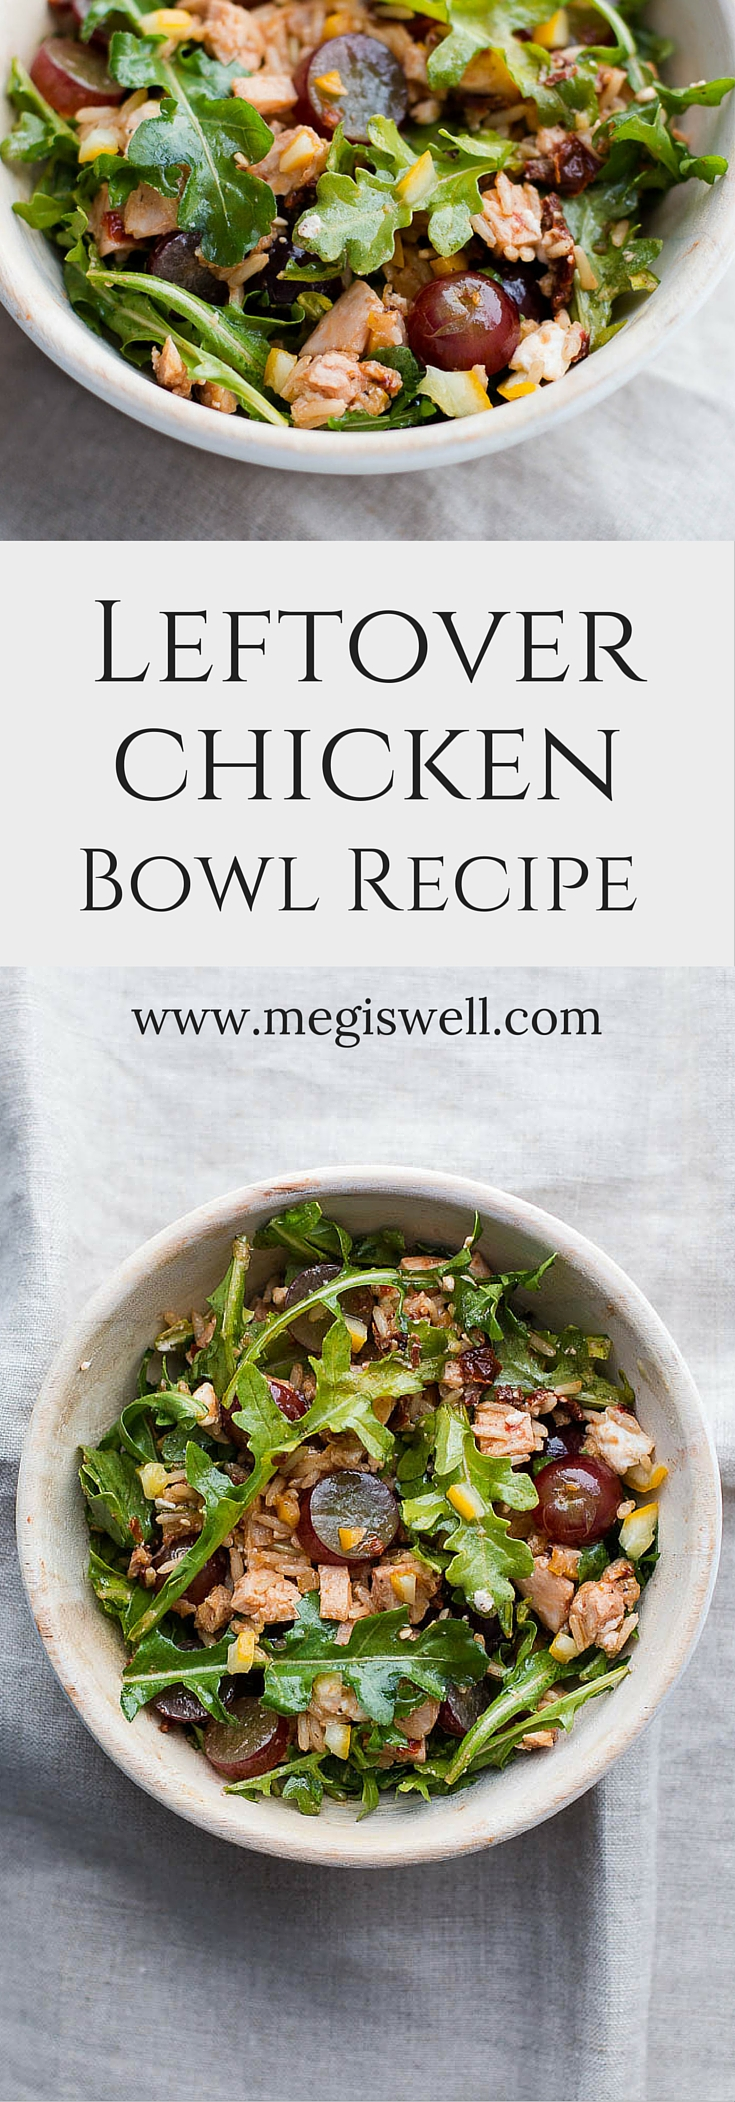 This Leftover Chicken Bowl Recipe is an easy and quick way to get rid of leftovers. Brown rice, sun dried tomatoes, preserved lemon, feta, grapes, and arugula combine for a light, healthy, and filling bowl. | www.megiswell.com